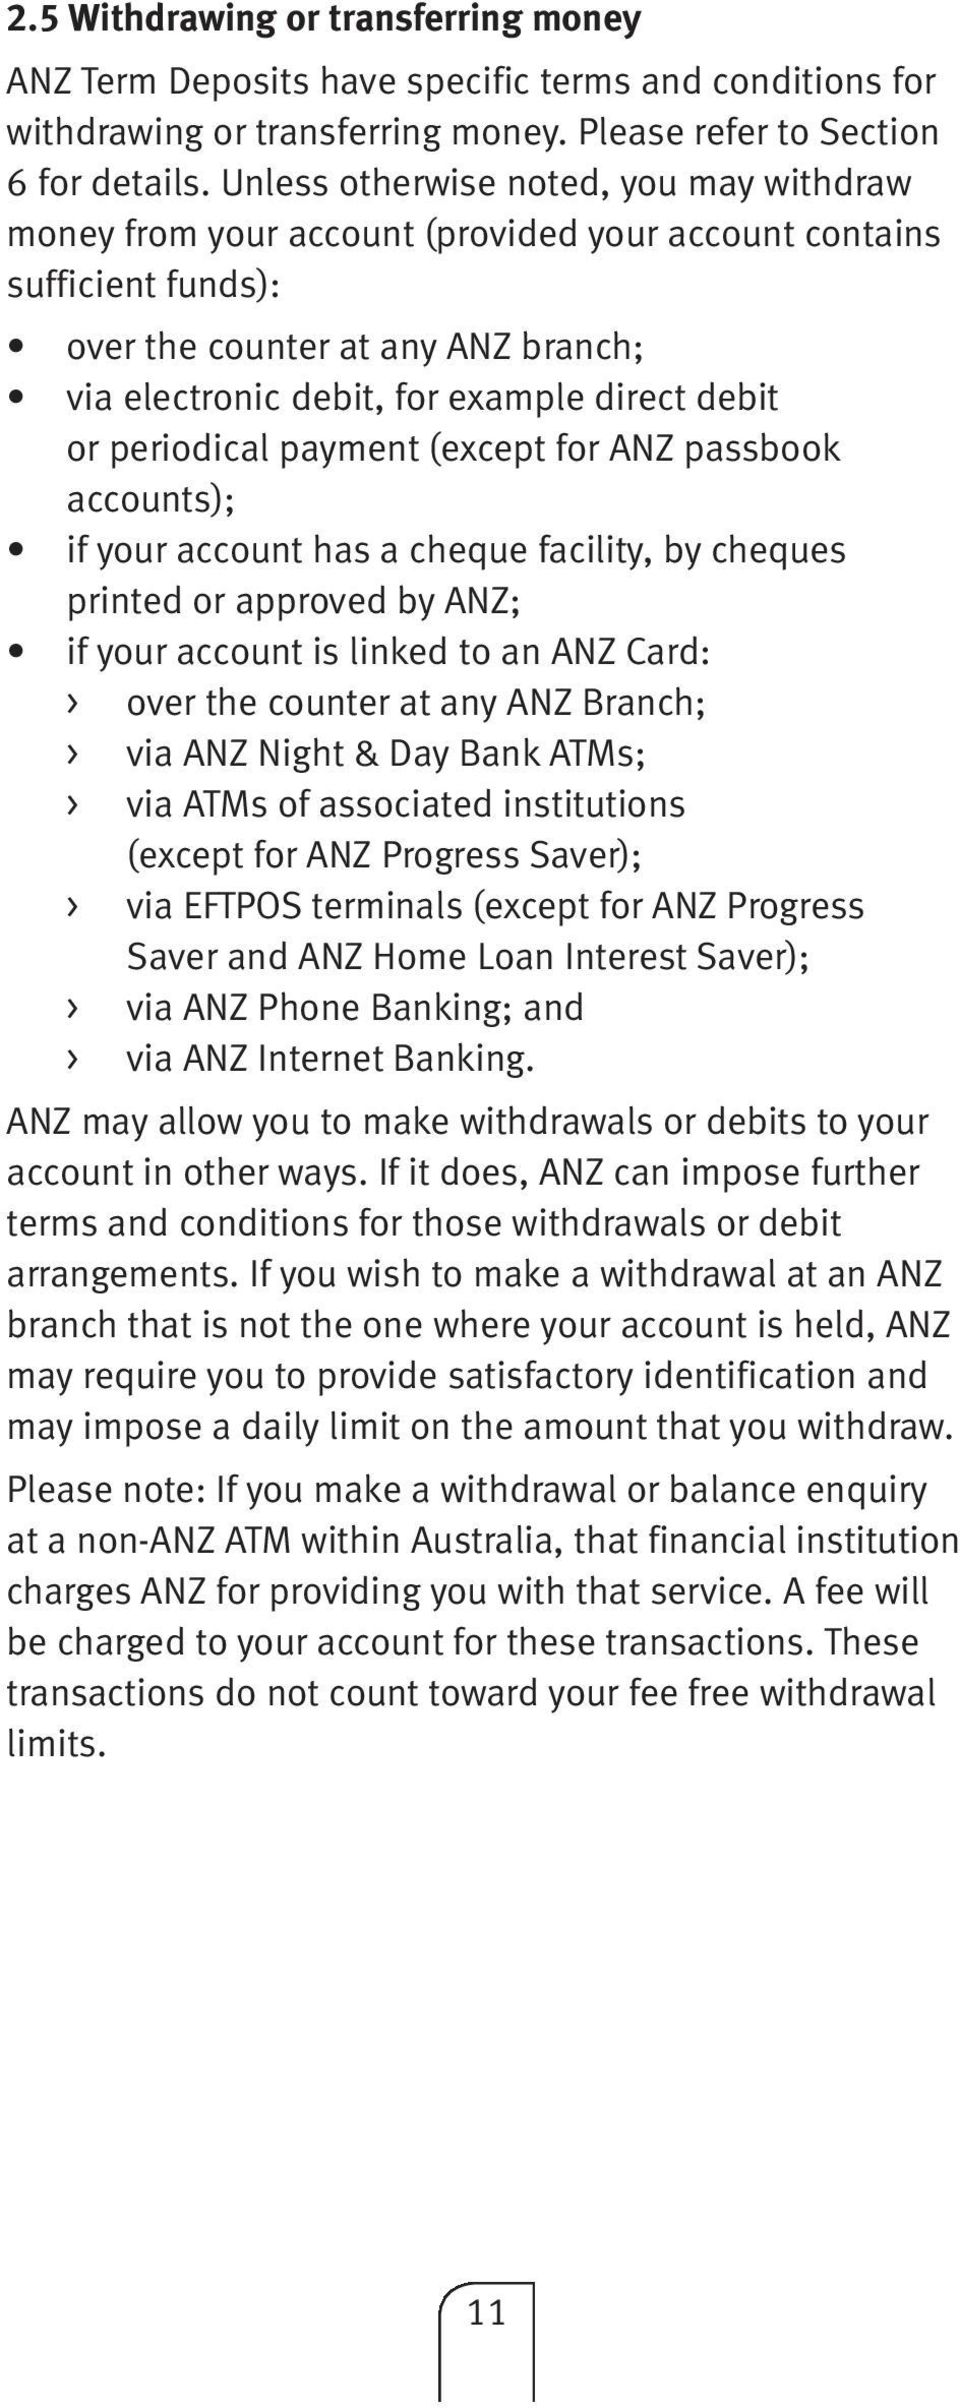 or periodical payment (except for ANZ passbook accounts); if your account has a cheque facility, by cheques printed or approved by ANZ; if your account is linked to an ANZ Card: > over the counter at